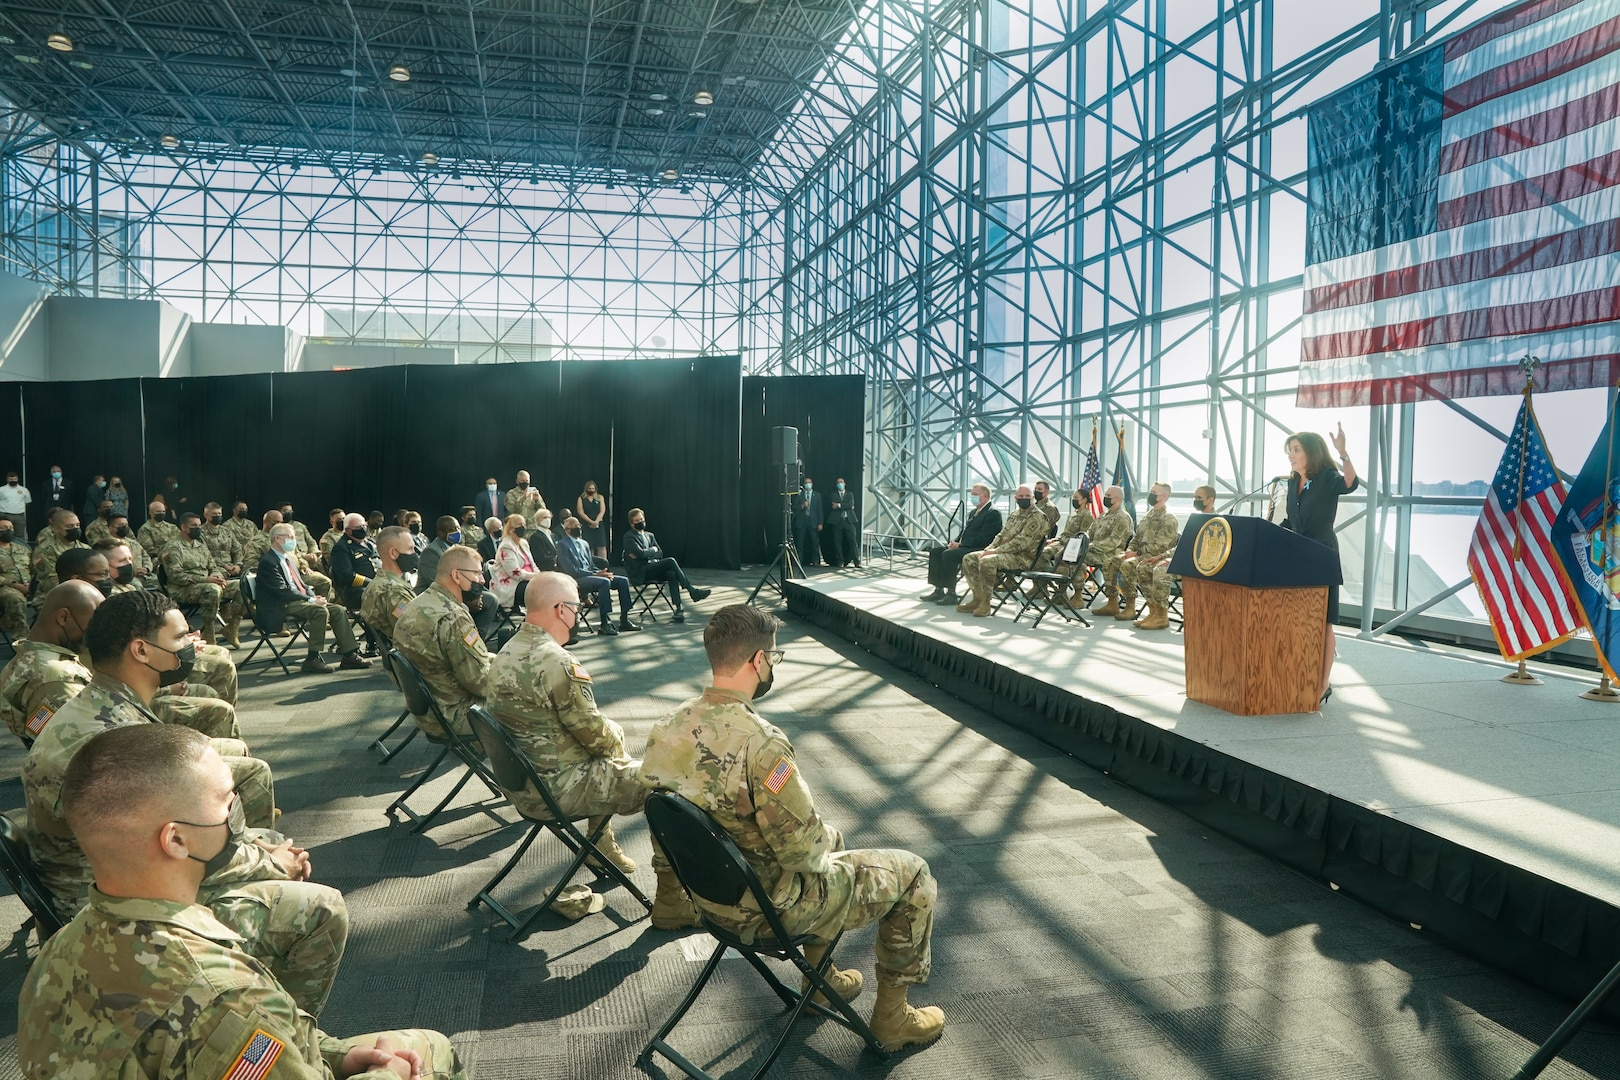 Gov.KathyHochulrecognizes the New York National Guard for its service responding to the 9/11 terror attacks on the 20th anniversary of Sept. 11, 2001 in remarks at the Jacob Javits Center in New York City.